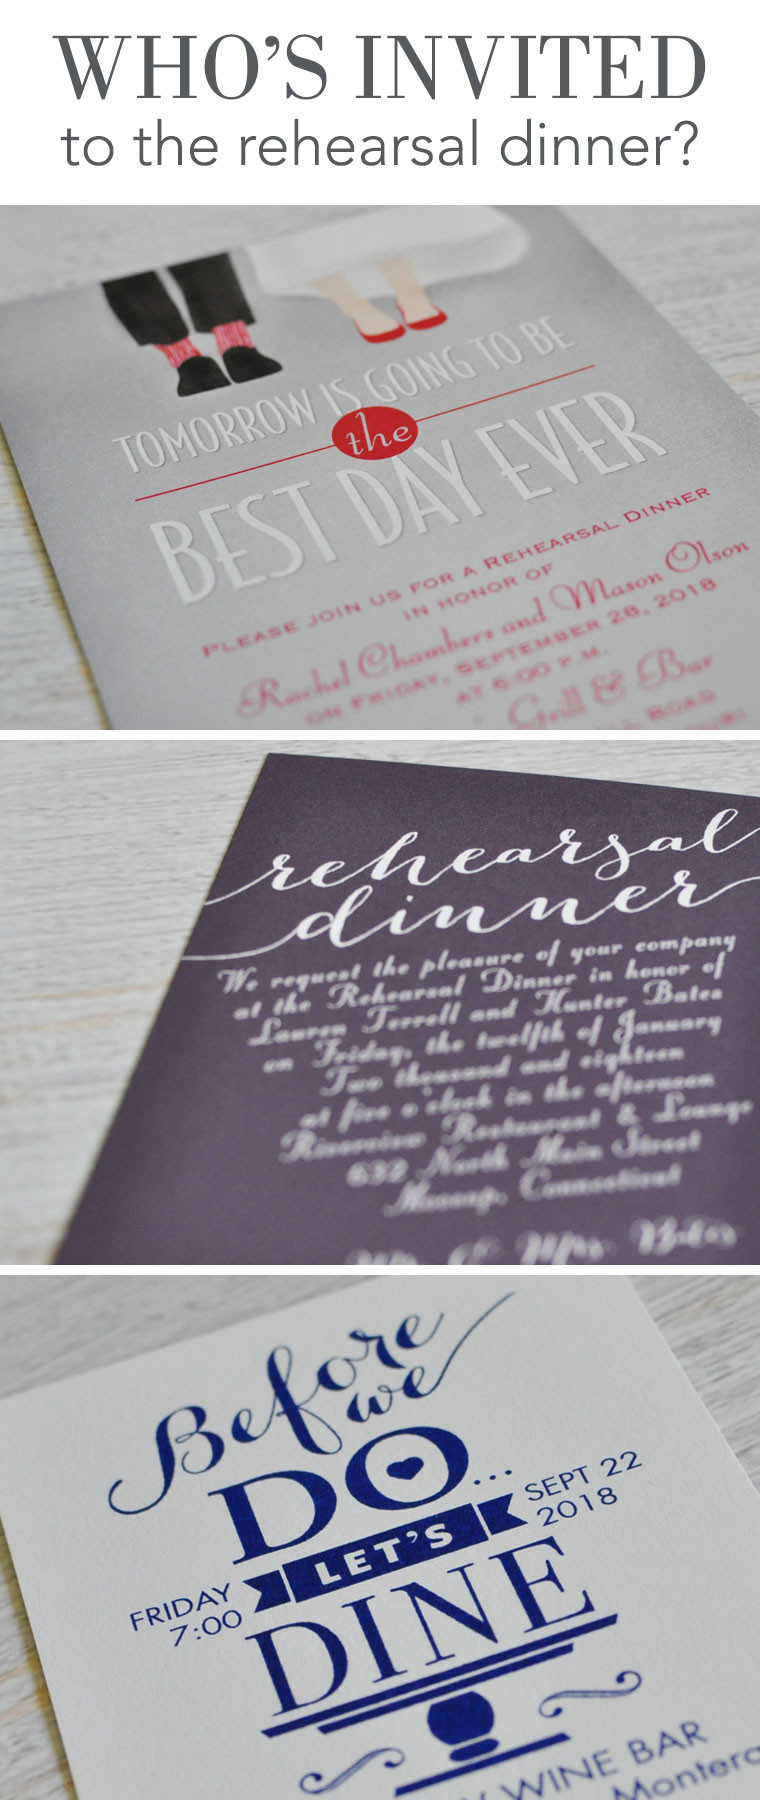 Who Is Invited To The Rehearsal Dinner  Who's invited to the rehearsal dinner